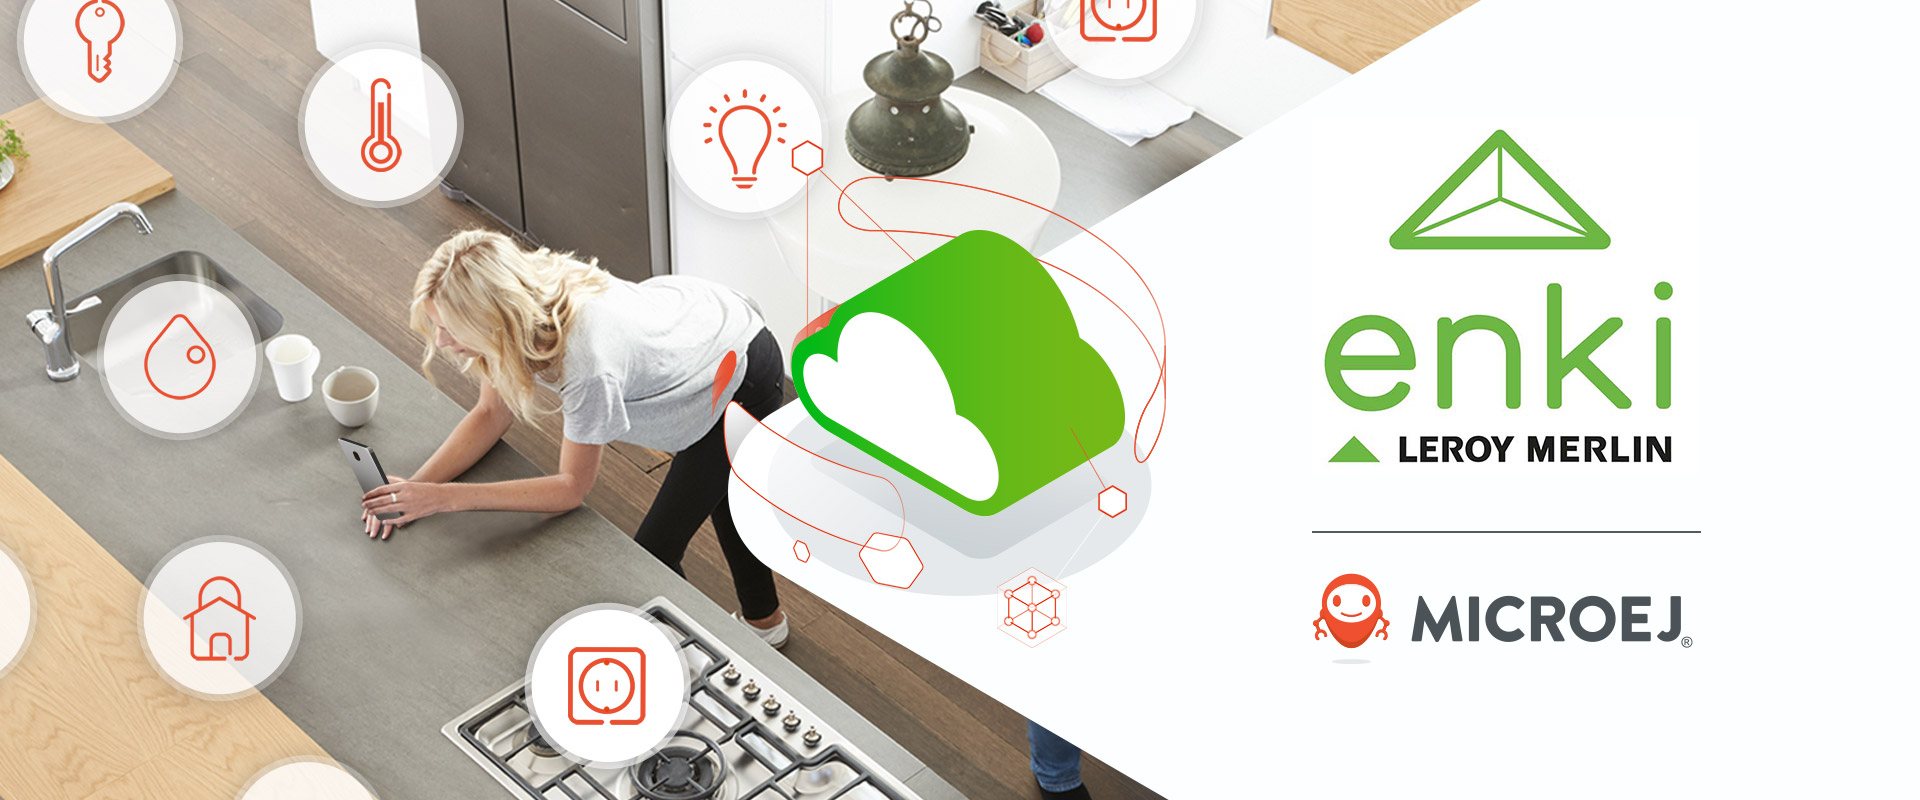 Enki by Leroy Merlin Scales Up Smart Home Ecosystem Integration Thanks to MicroEJ Solutions